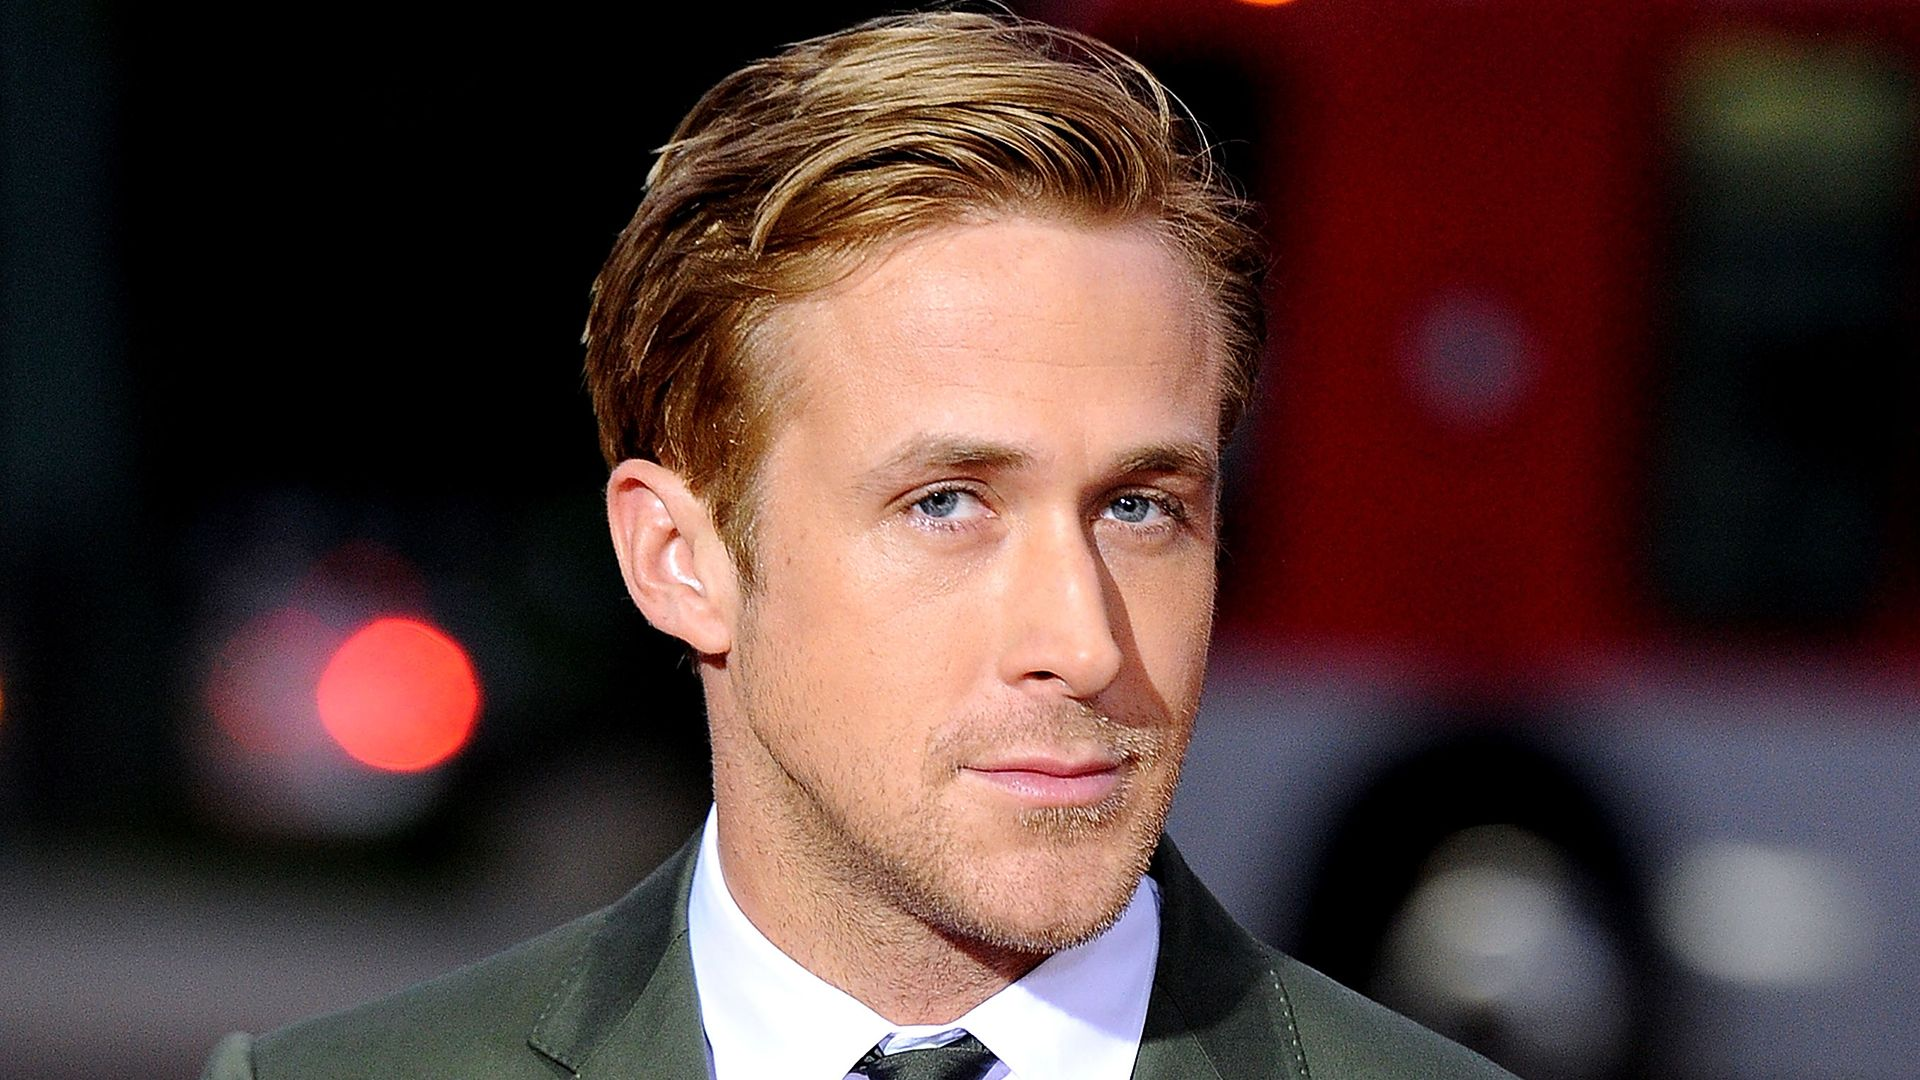 Ryan Gosling Blade Runner Sequel Actor Joins Harrison Ford -